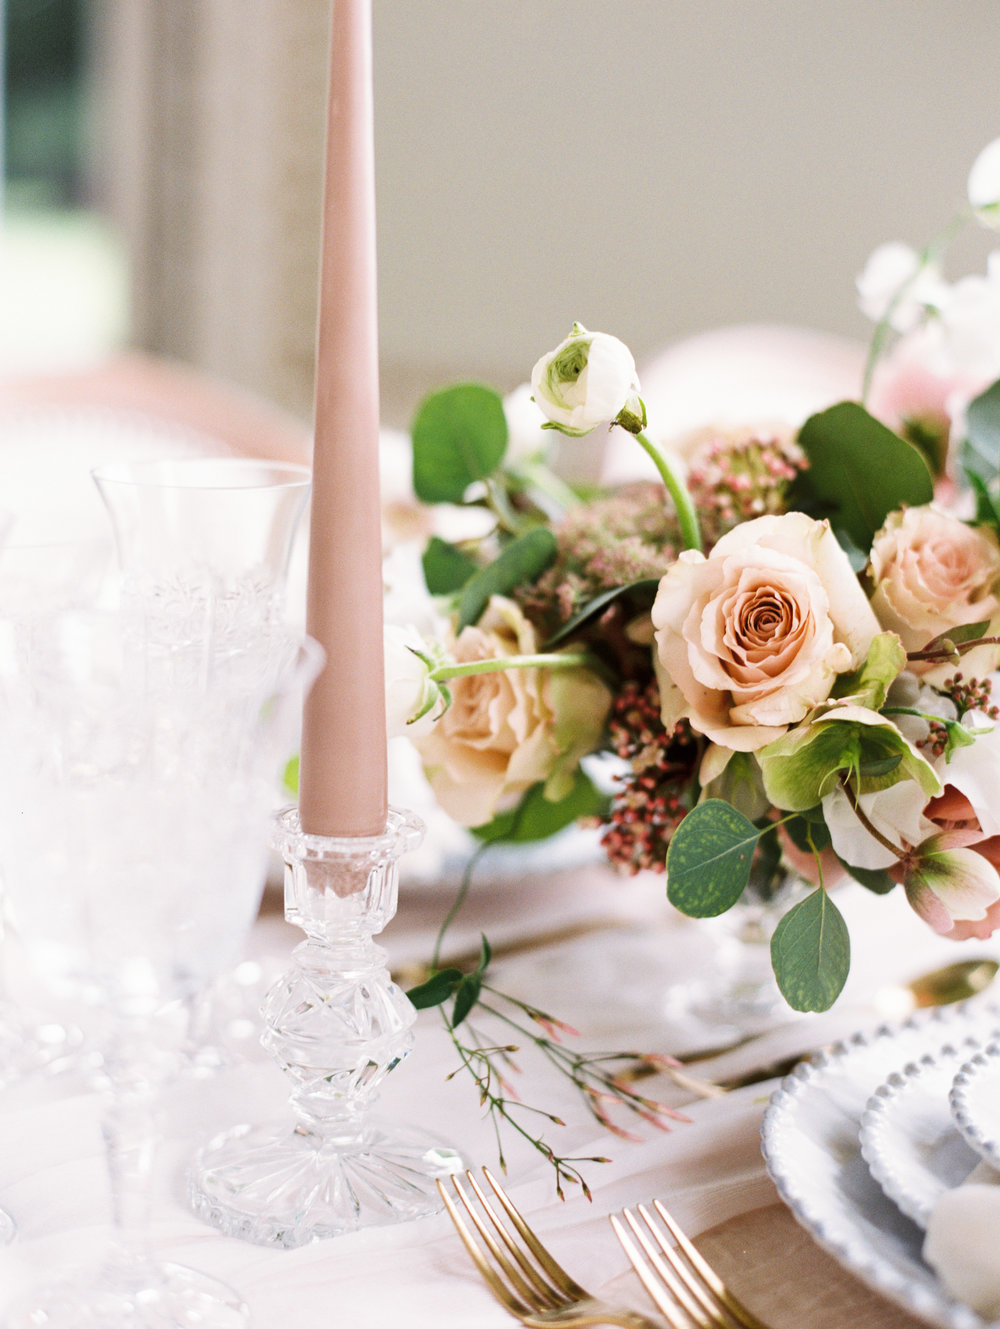 The Timeless Stylist-Elegant and Romantic Dinner Party Styling-Taupe Tapered Candles and Glass Candlesticks